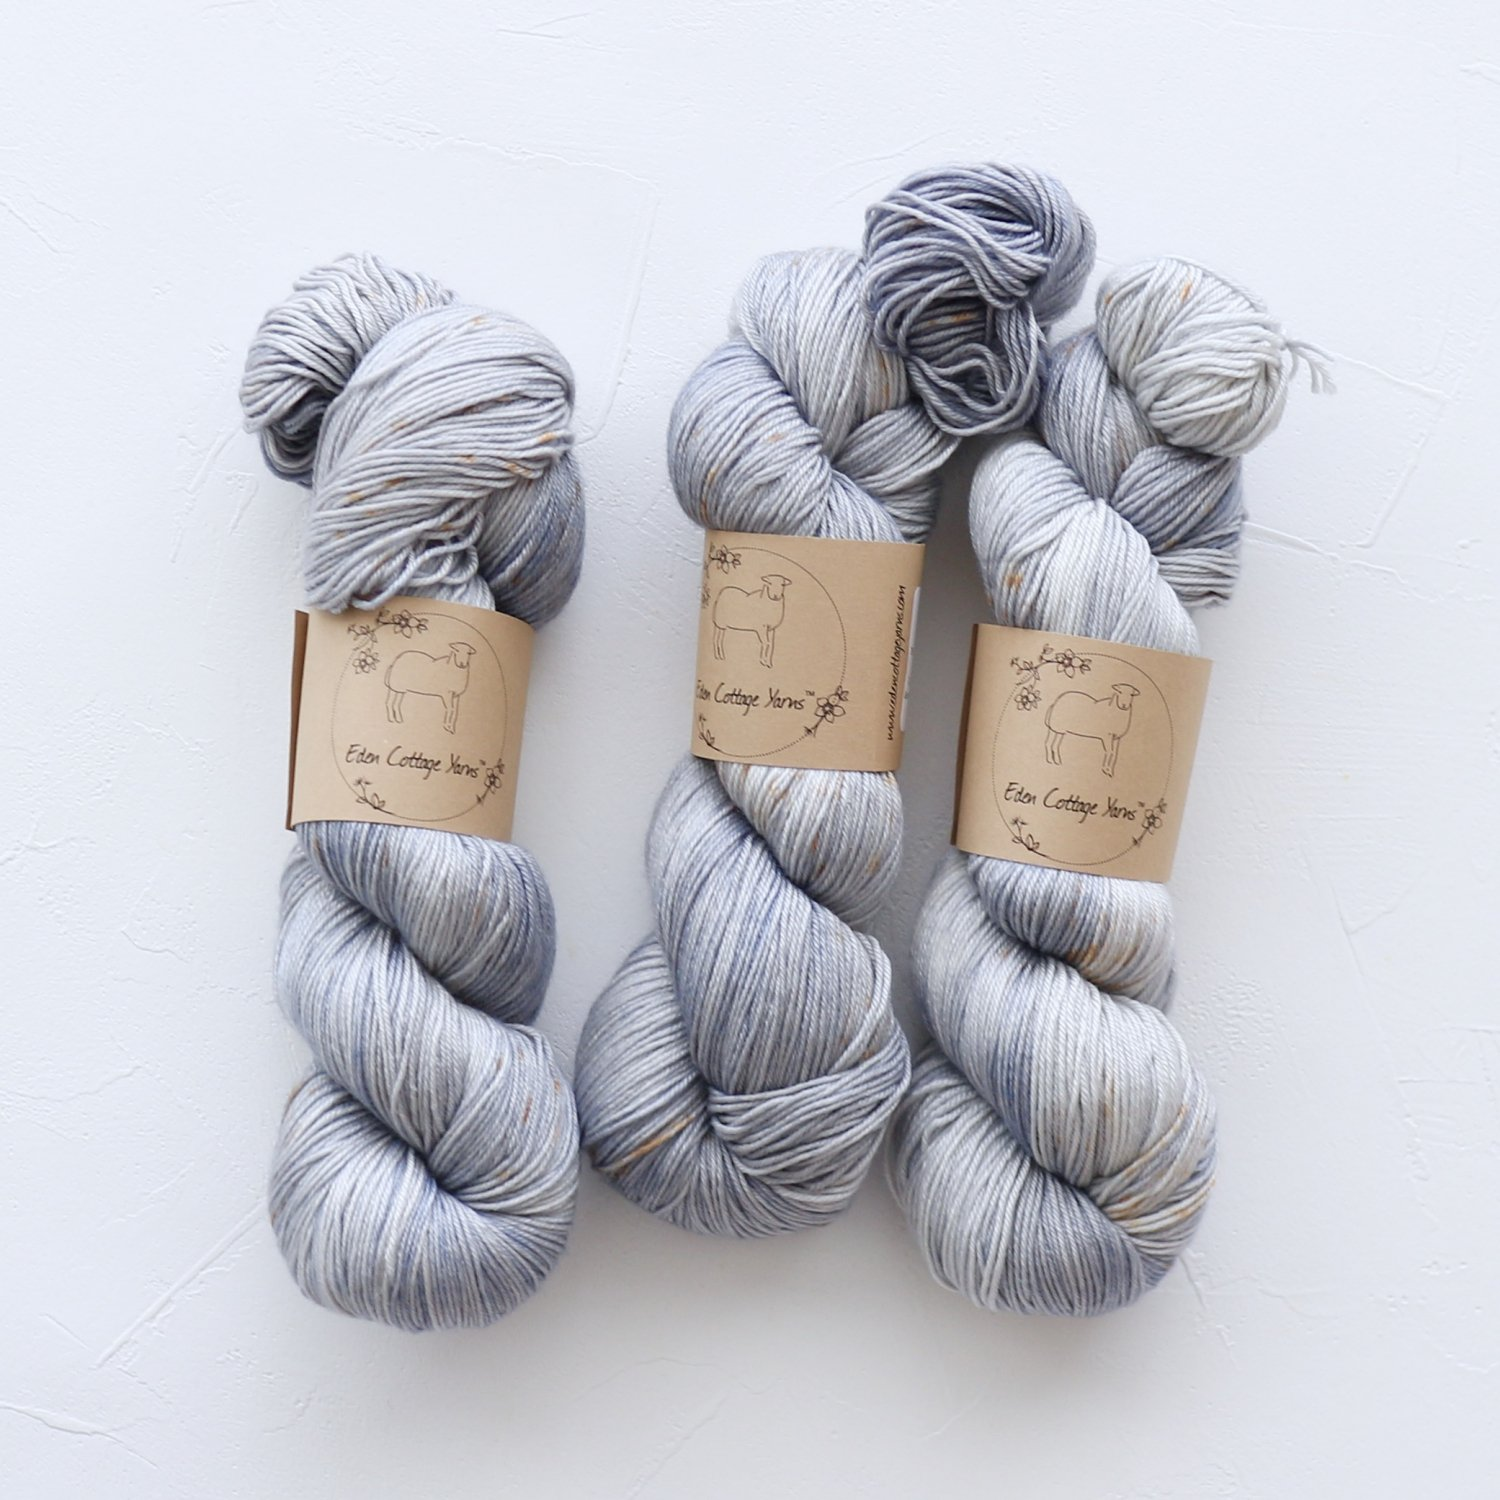 【Eden Cottage Yarns】<br>Titus 4ply<br>Old Jeans